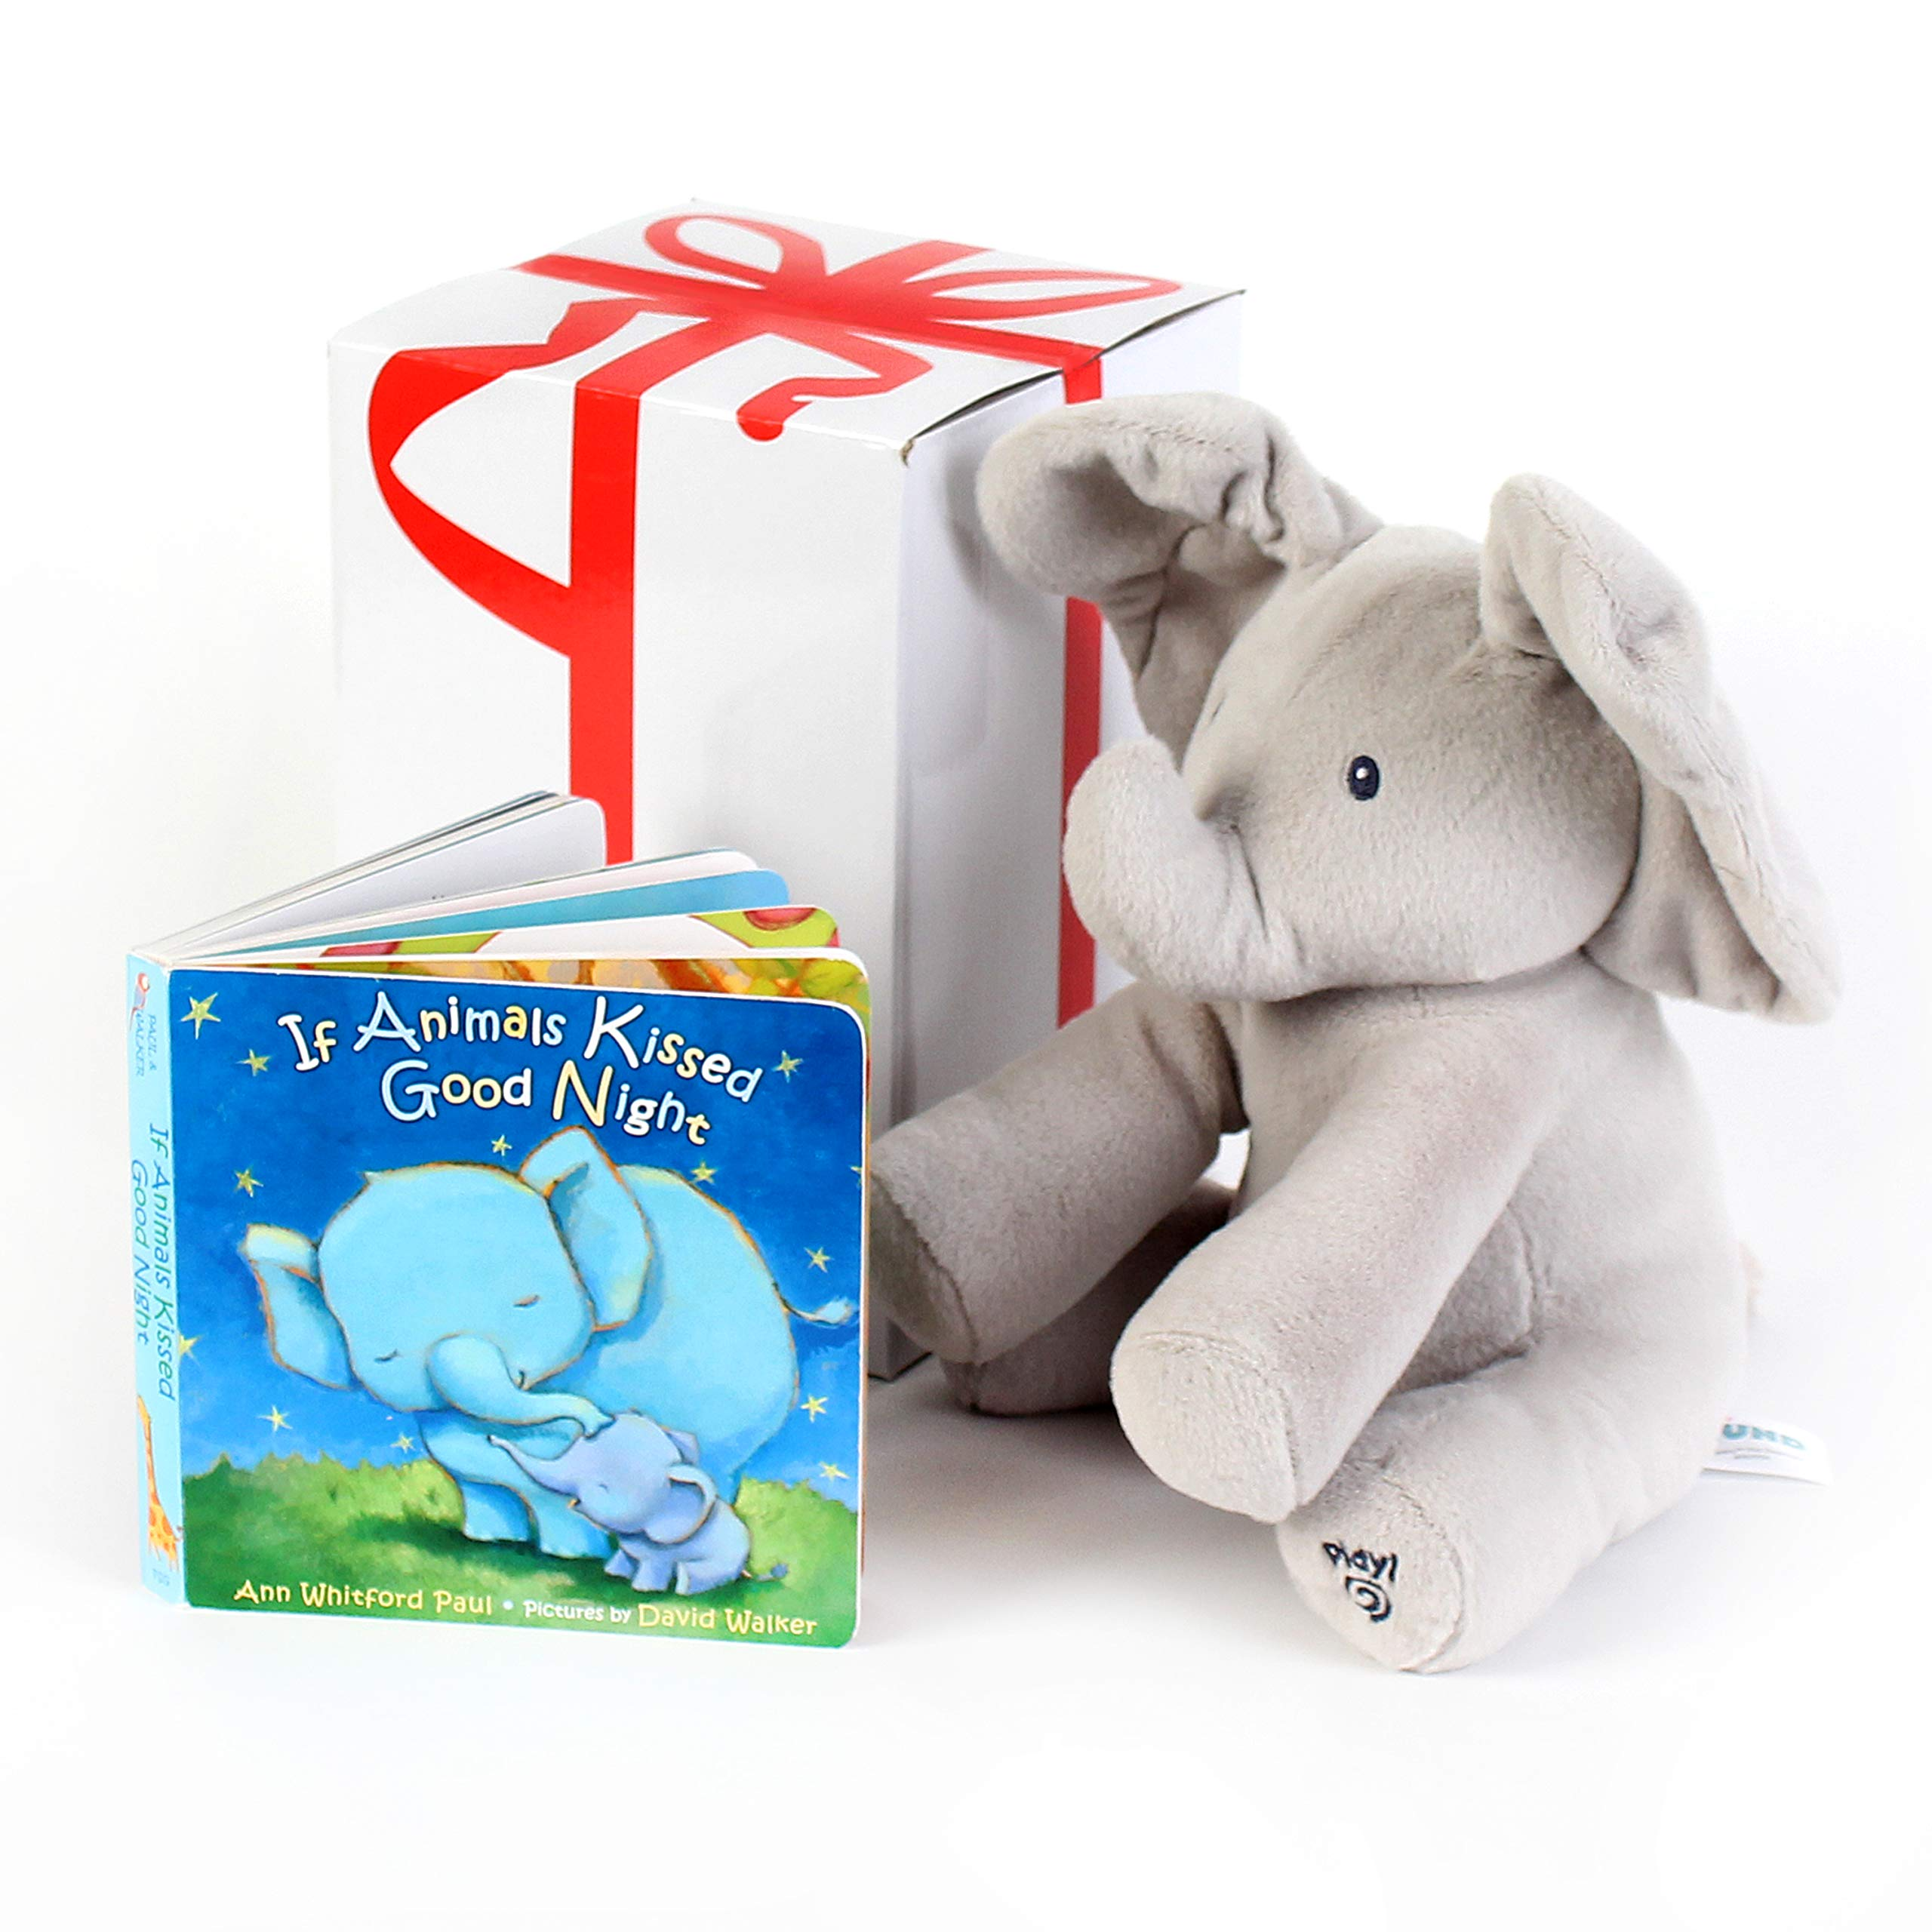 GUND BABY ANIMATED FLAPPY THE ELEPHANT PLUSH TOY with ''IF ANIMALS KISSED GOODNIGHT'' Book, For Birthdays , Holidays And Baby Showers. Great For Babies And Toddler Toys. Gift set bundle by Rimon by GUND